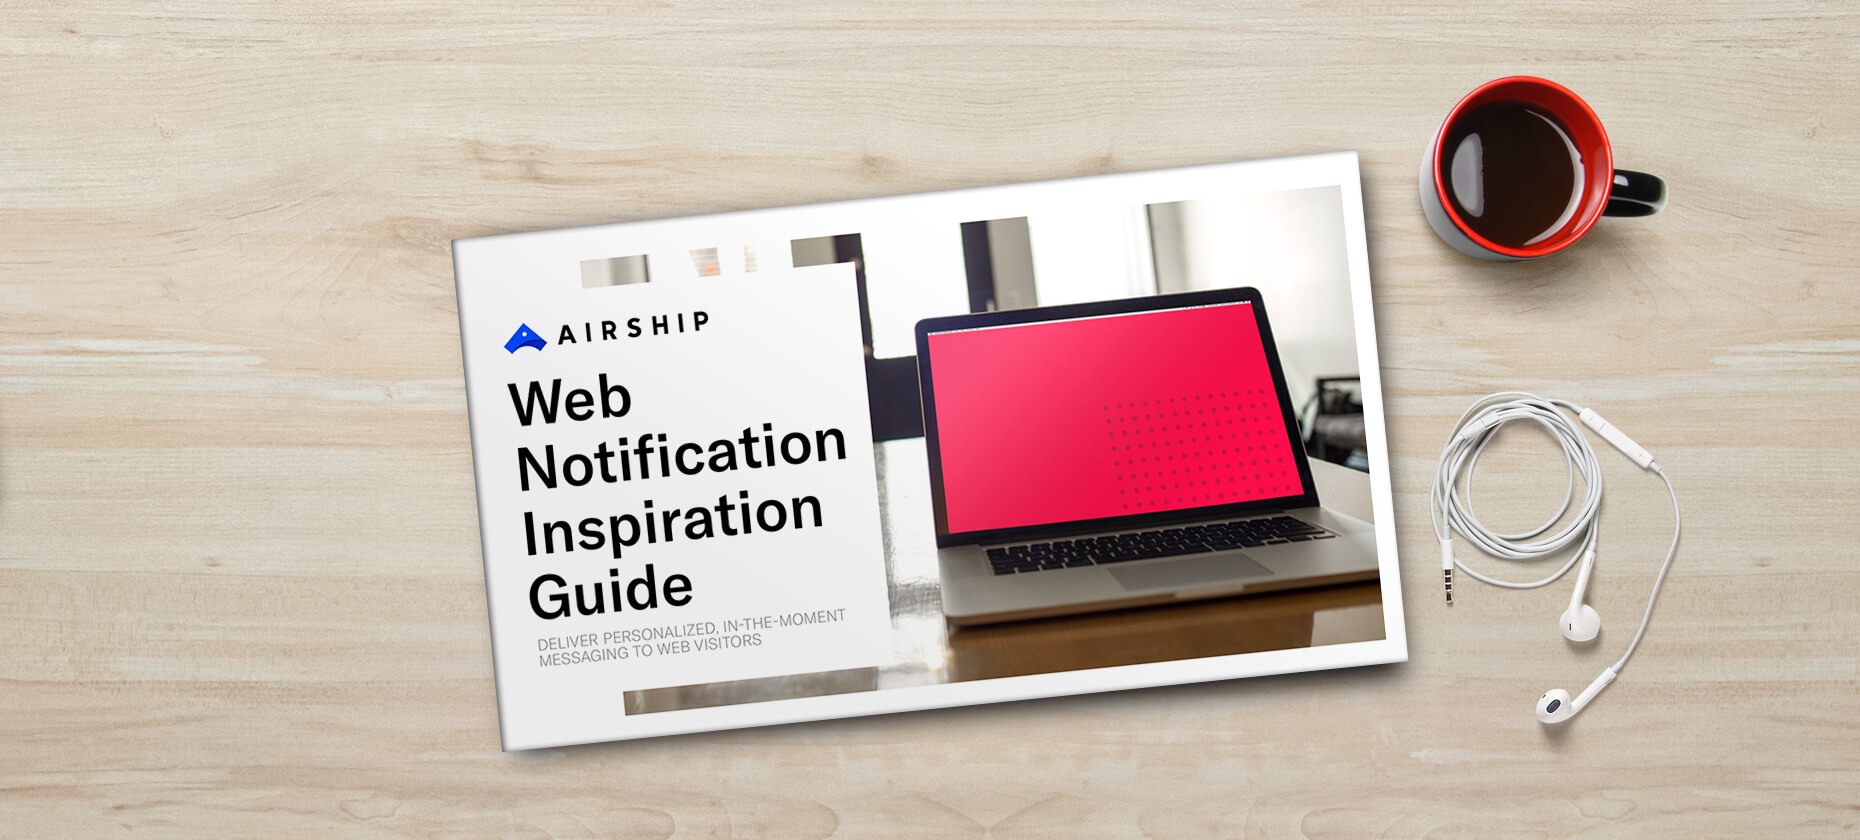 web-notification-inspiration-guide-cover-image-airship-ebook